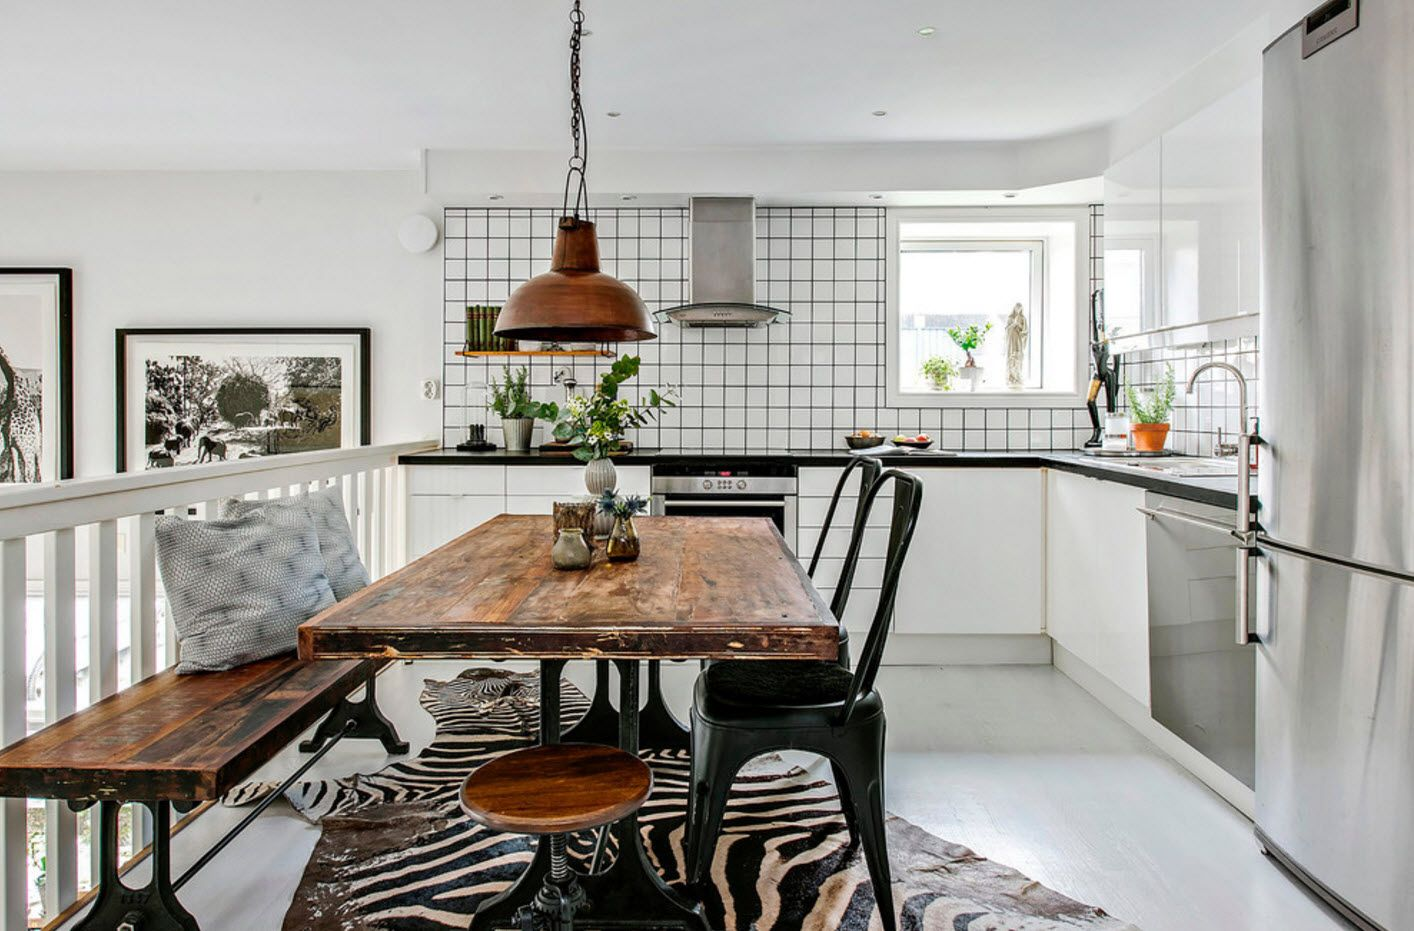 40 Square Feet Kitchen Modern Design Ideas & Layout Types. Rustic style with untreated wooden tabletop and plastic dark chairs